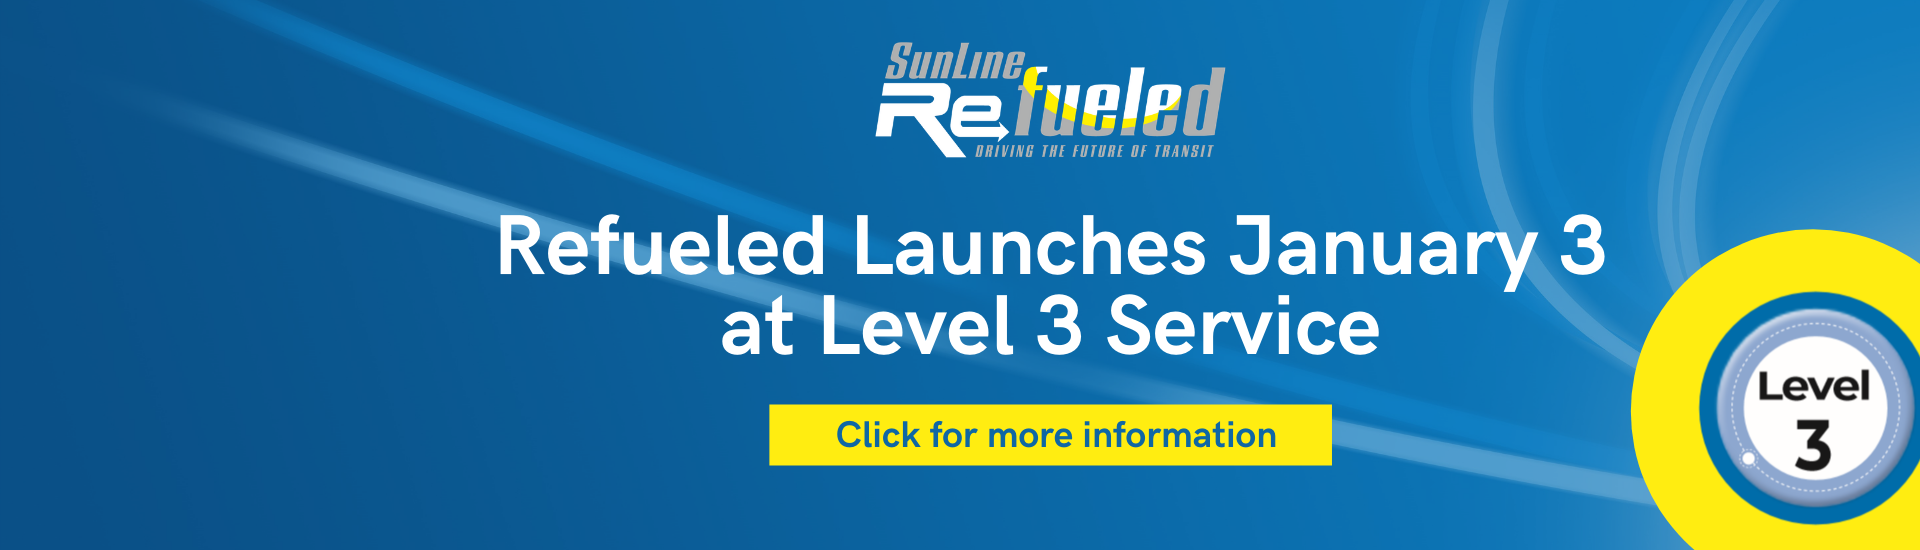 Sunline Refueled Begins January 3, 2021. Click here for more information.